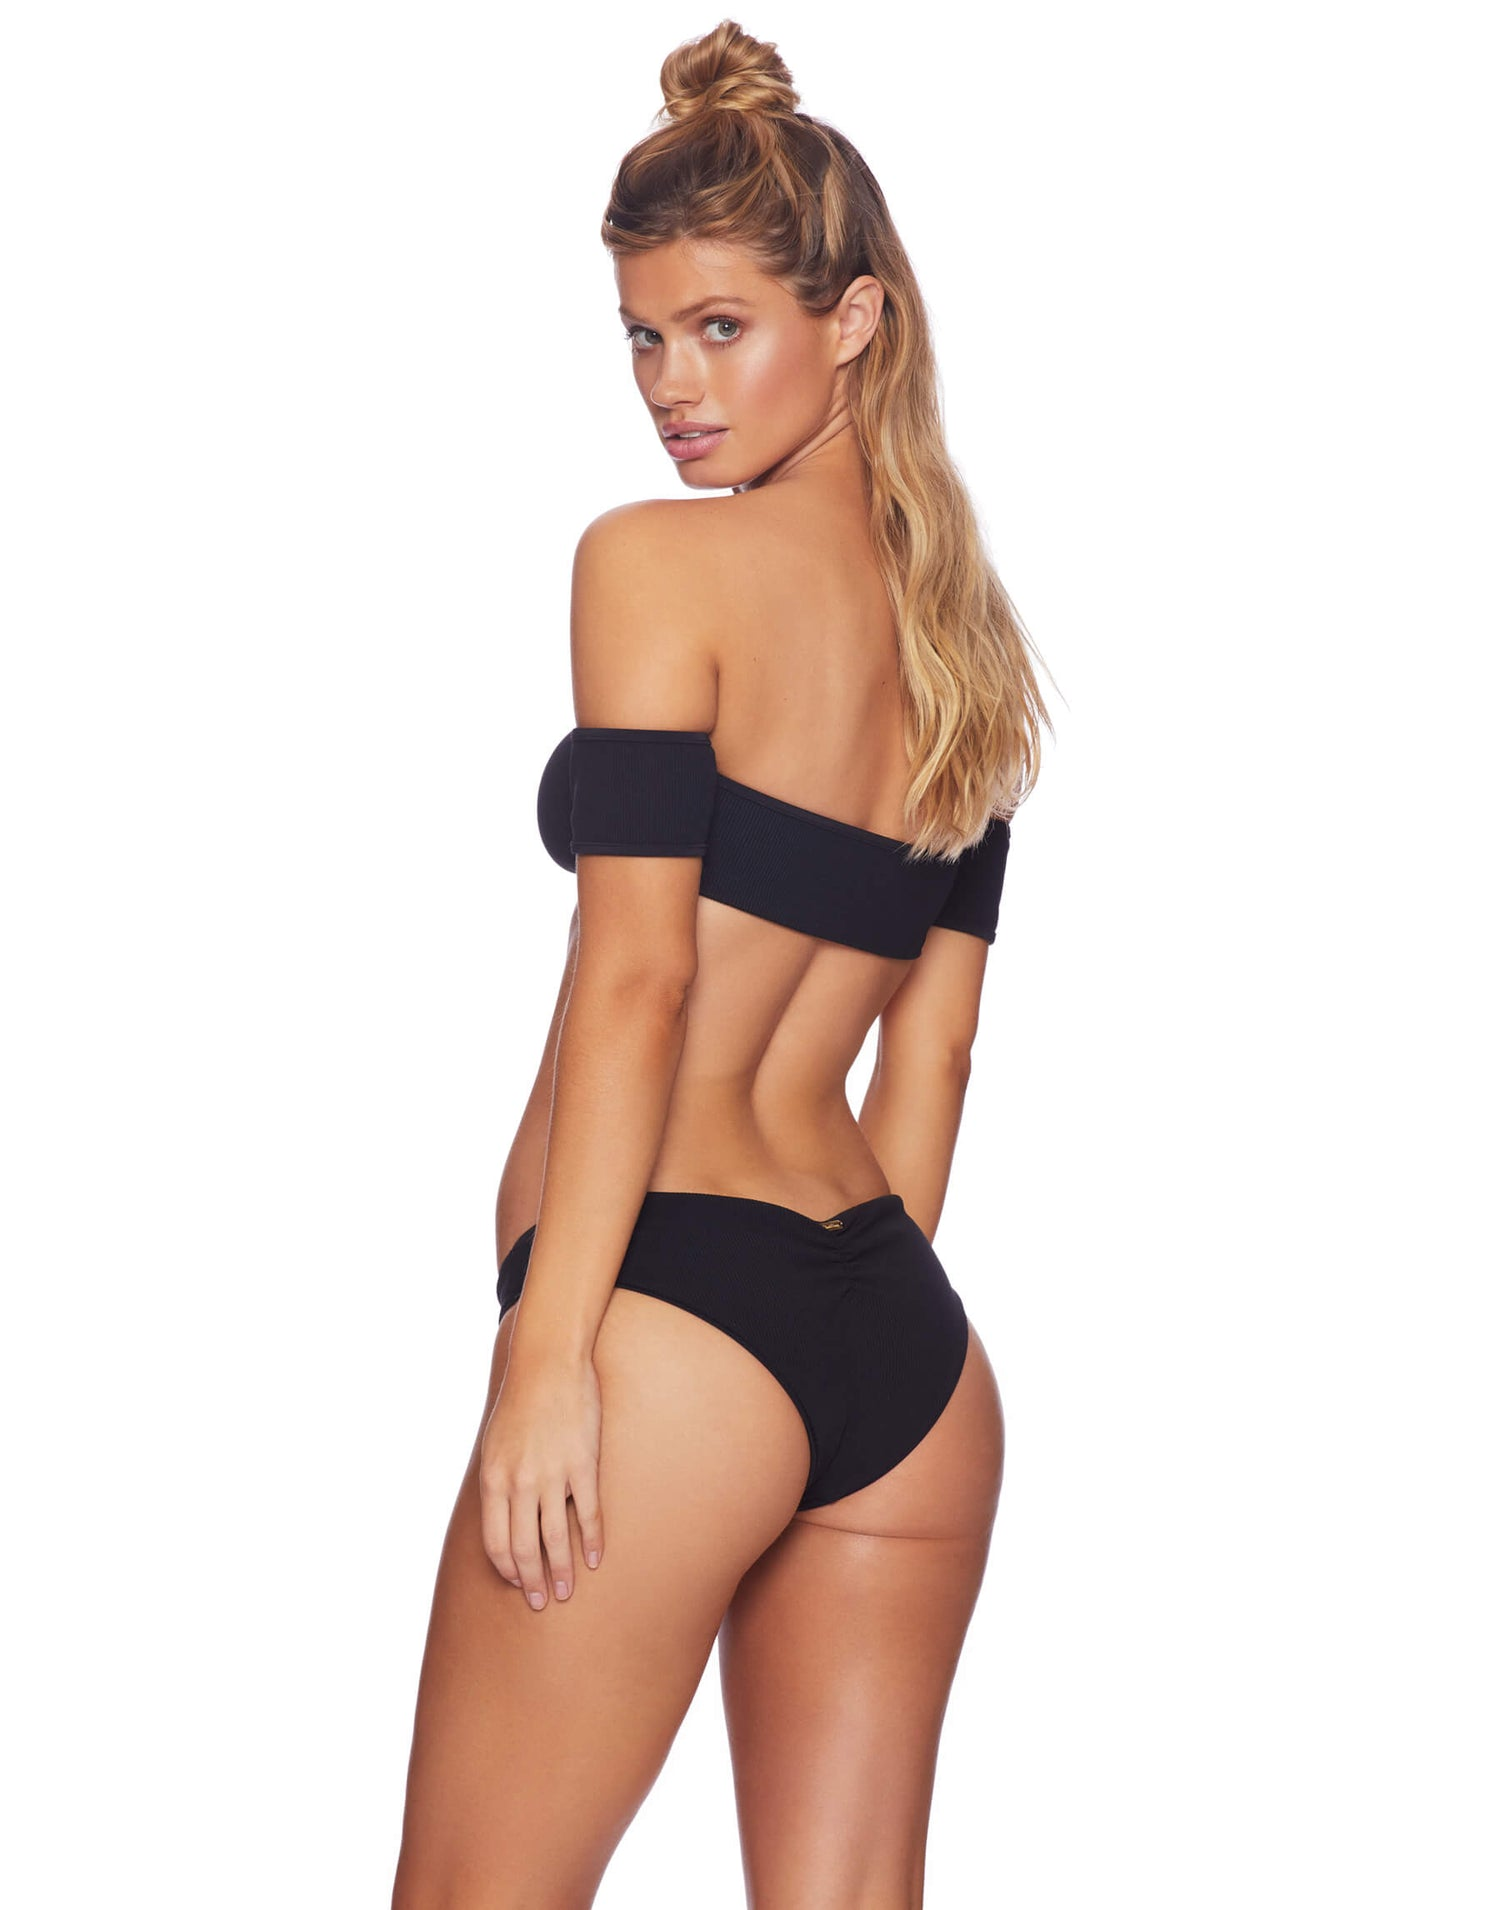 Presley Flat Skimpy Bikini Bottom in Black Rib - back view